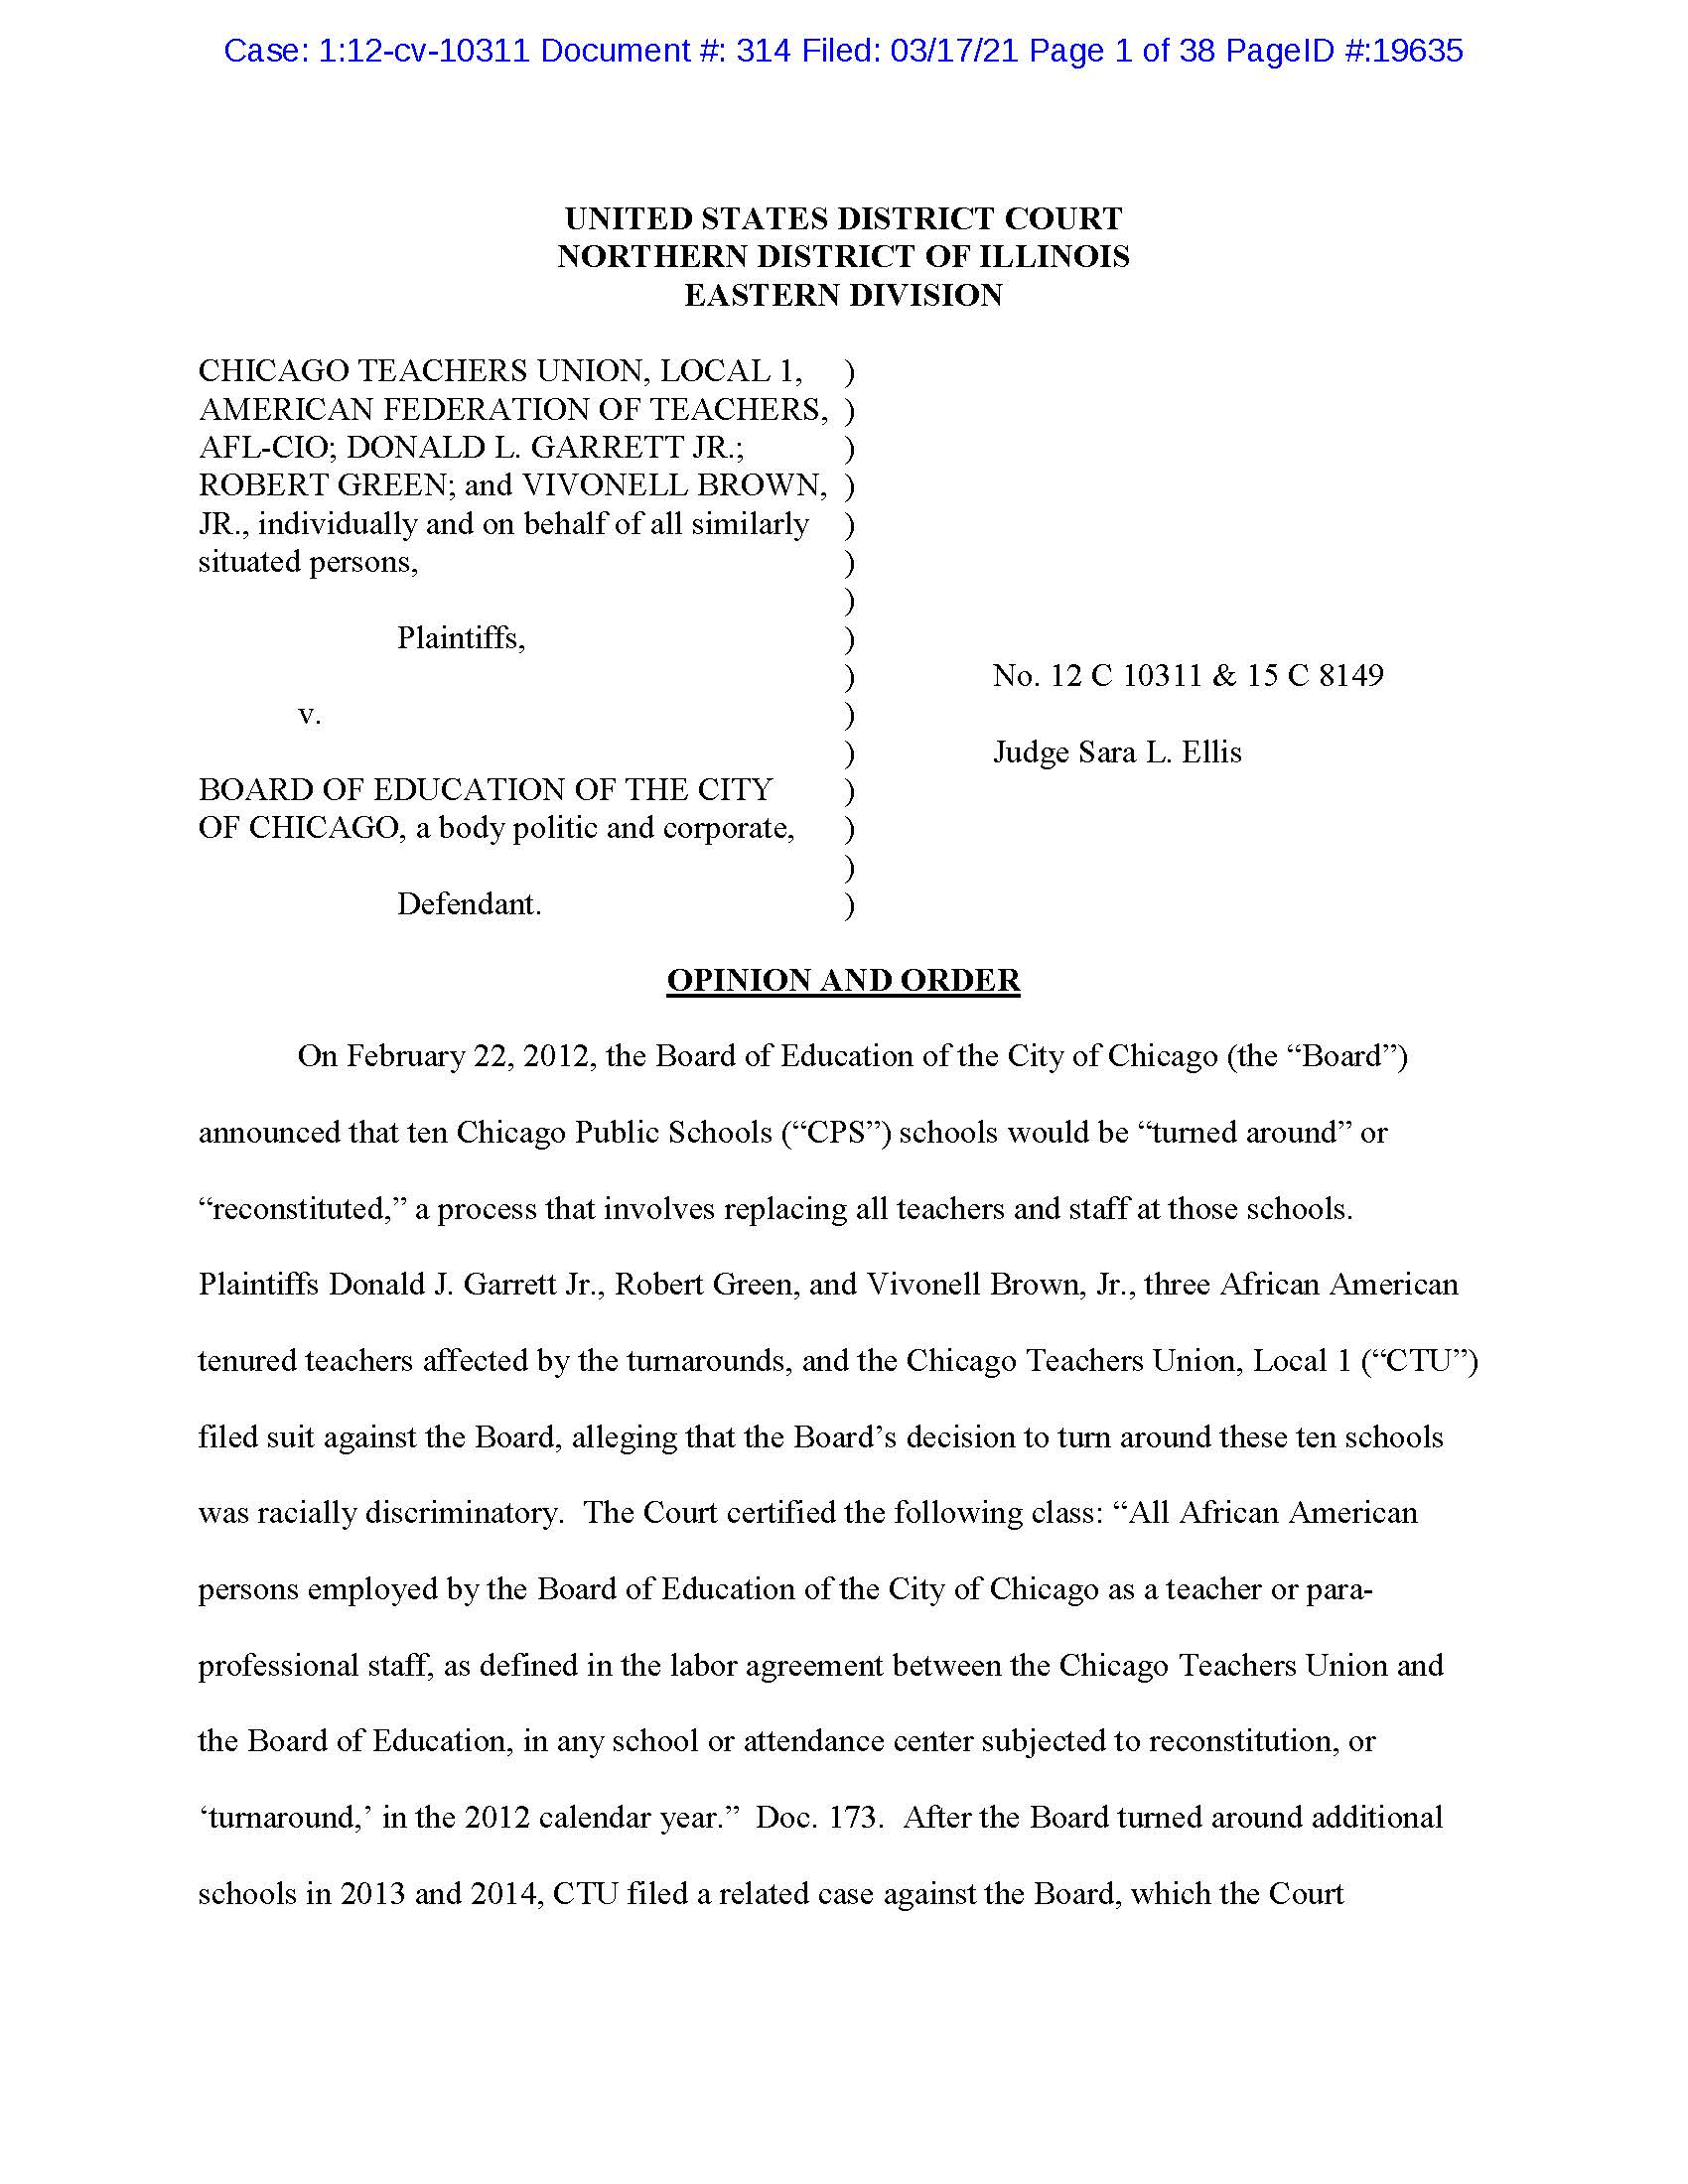 2012 civil rights lawsuit filed by CTU against CPS over 'turnarounds' going to trial